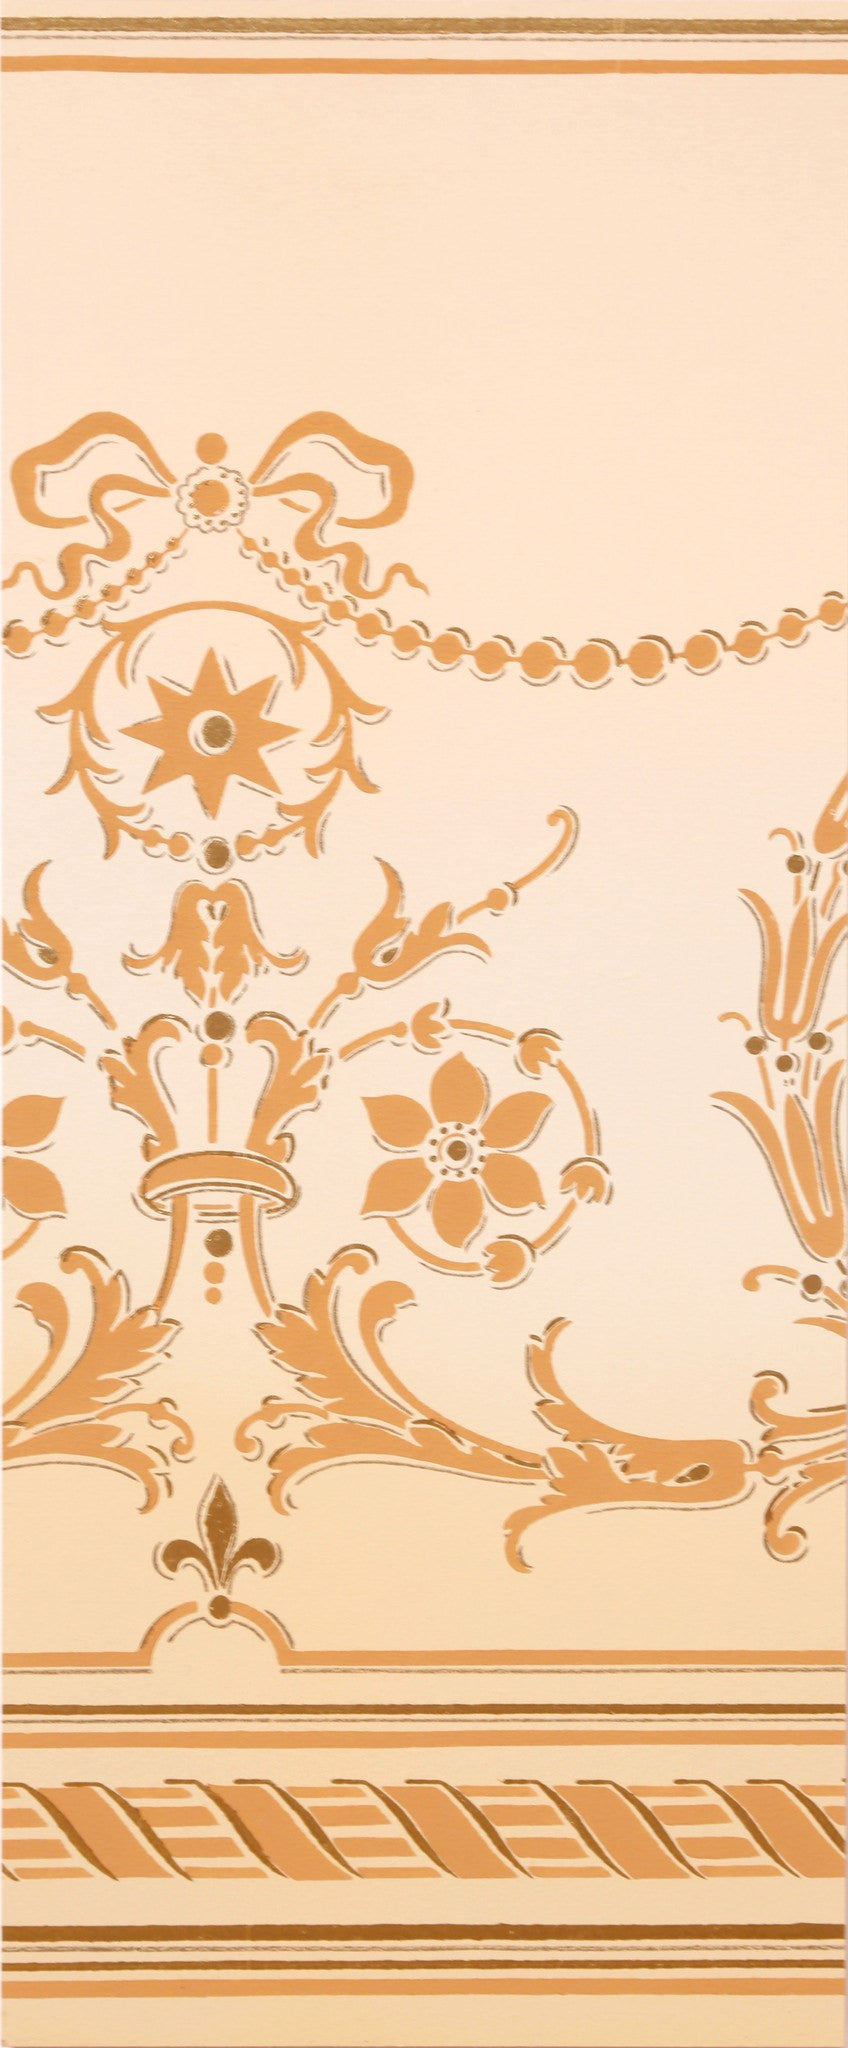 Blended Frieze with Delicate Swags/Florals - Mounted Antique Wallpaper Panel